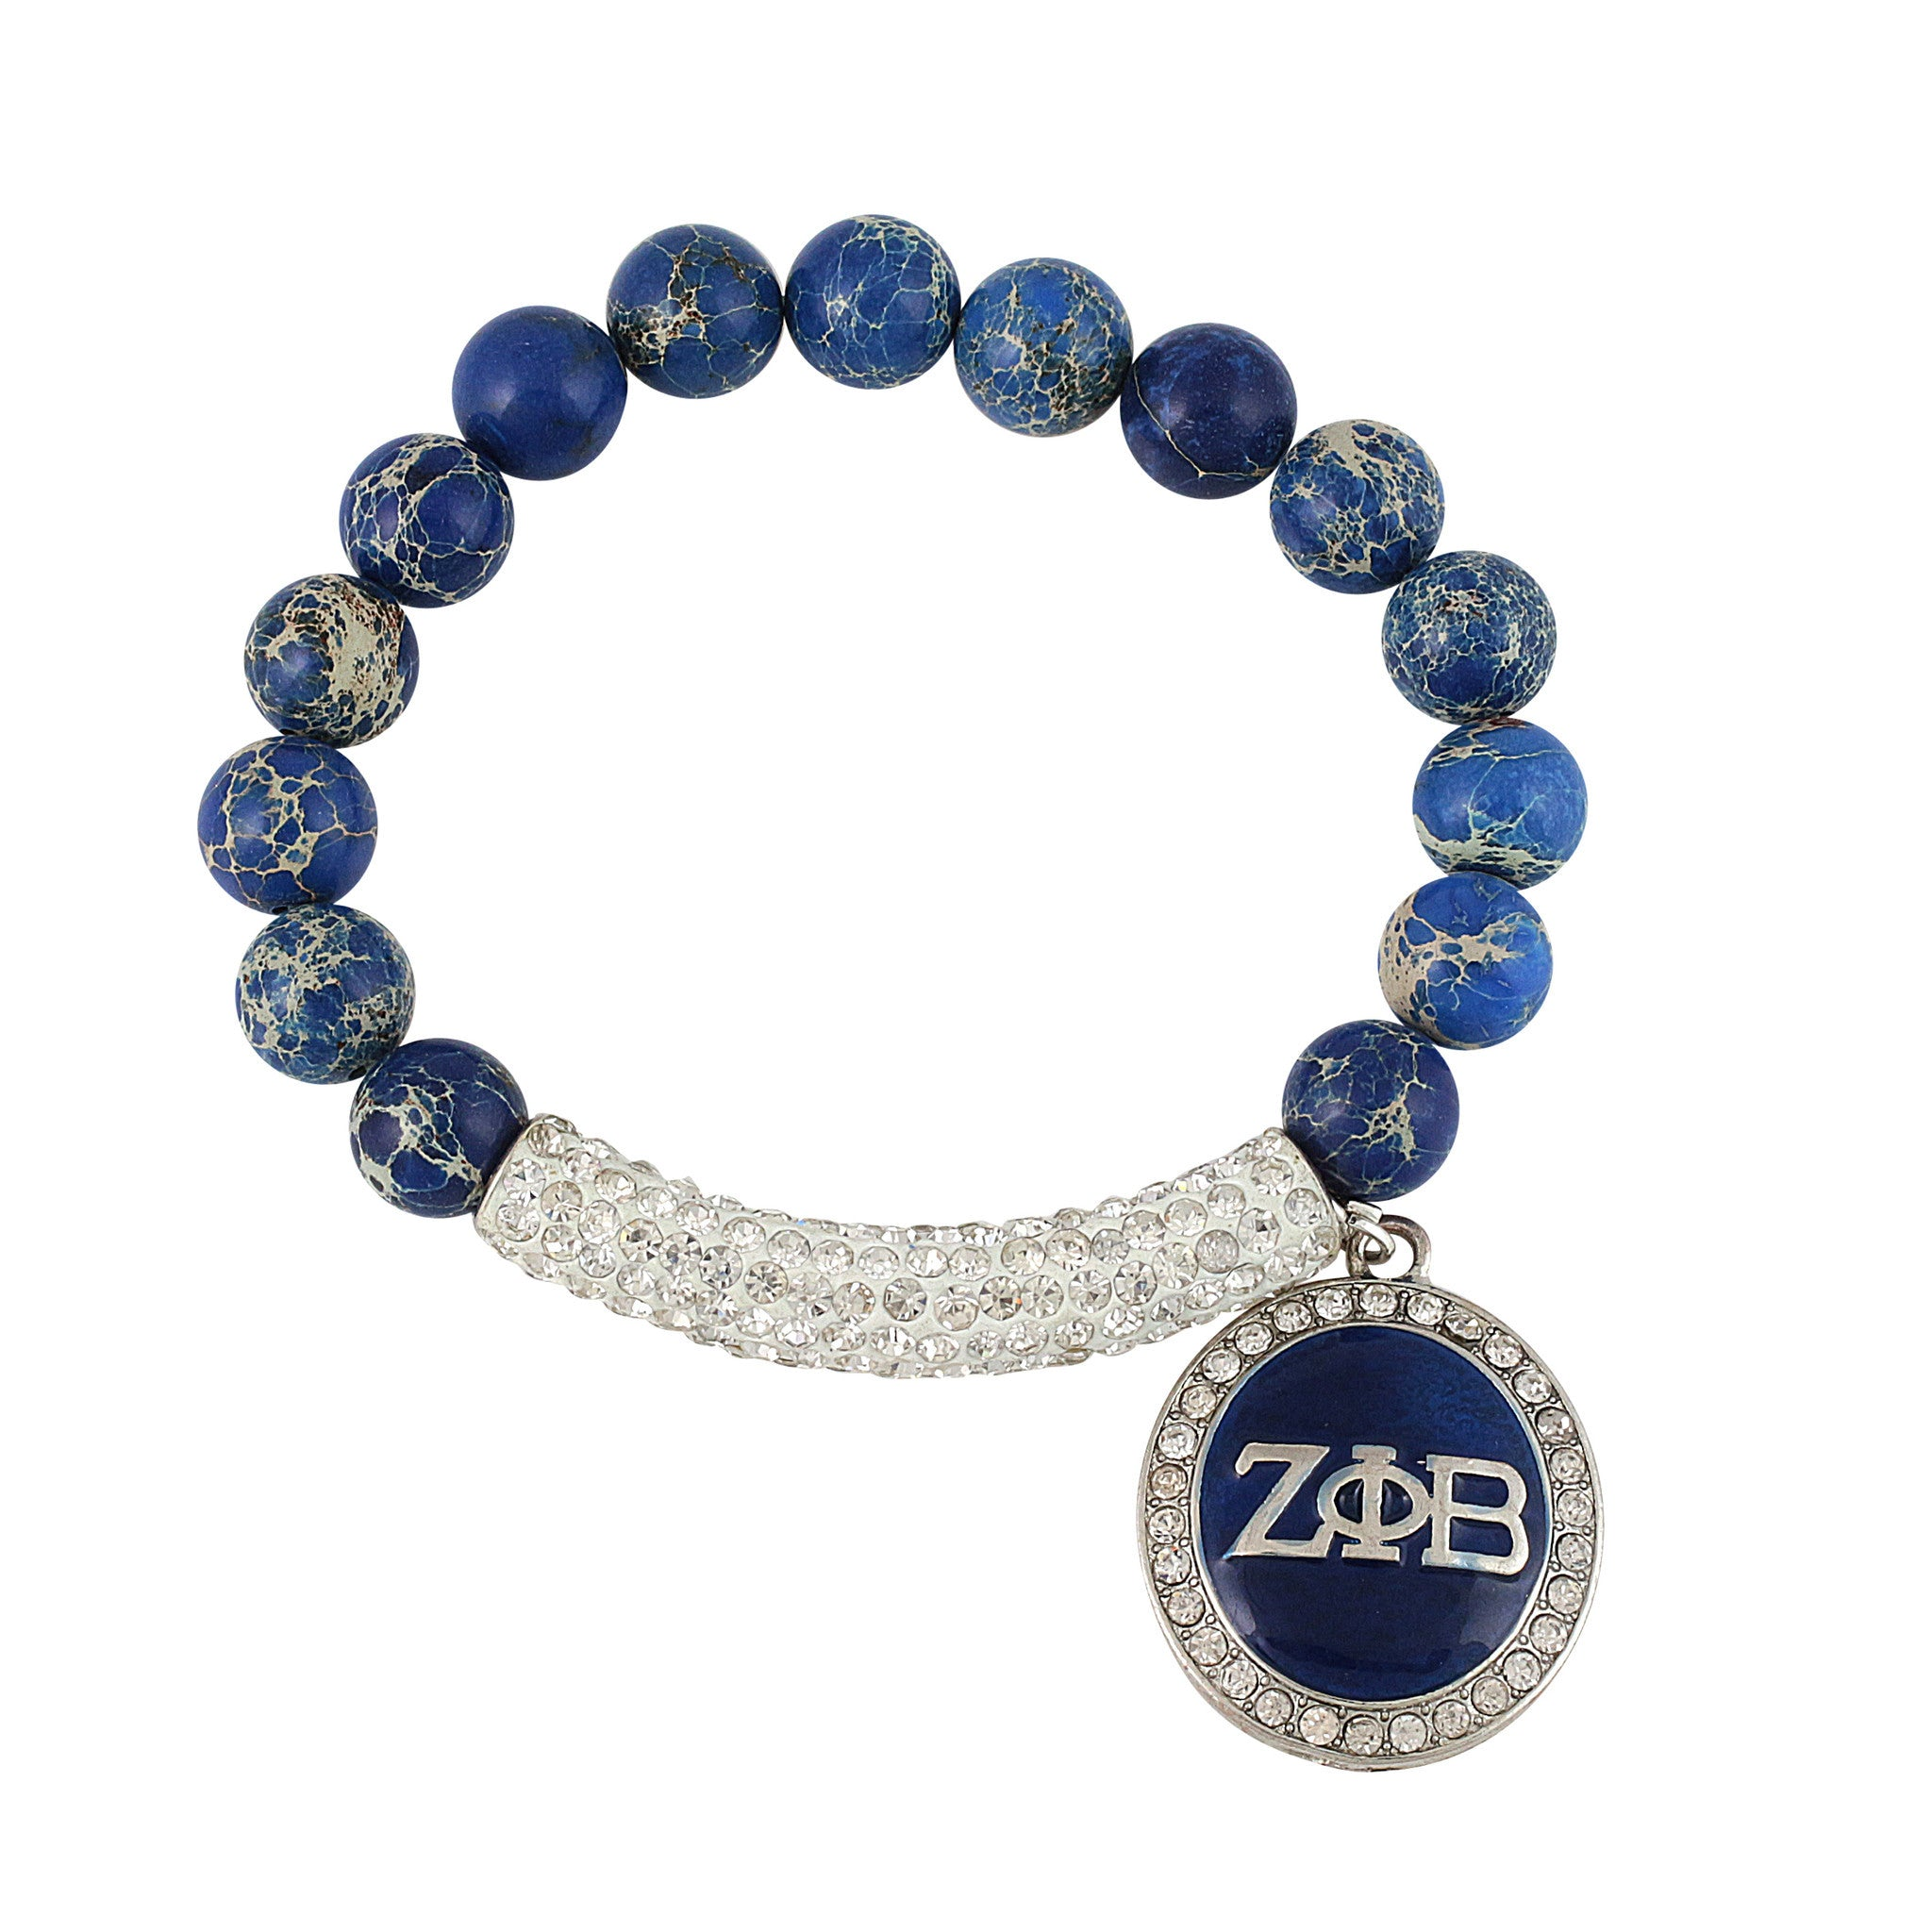 Zeta Phi Beta Arm Candy Jasper Gemstone & Pave Bling Bracelet